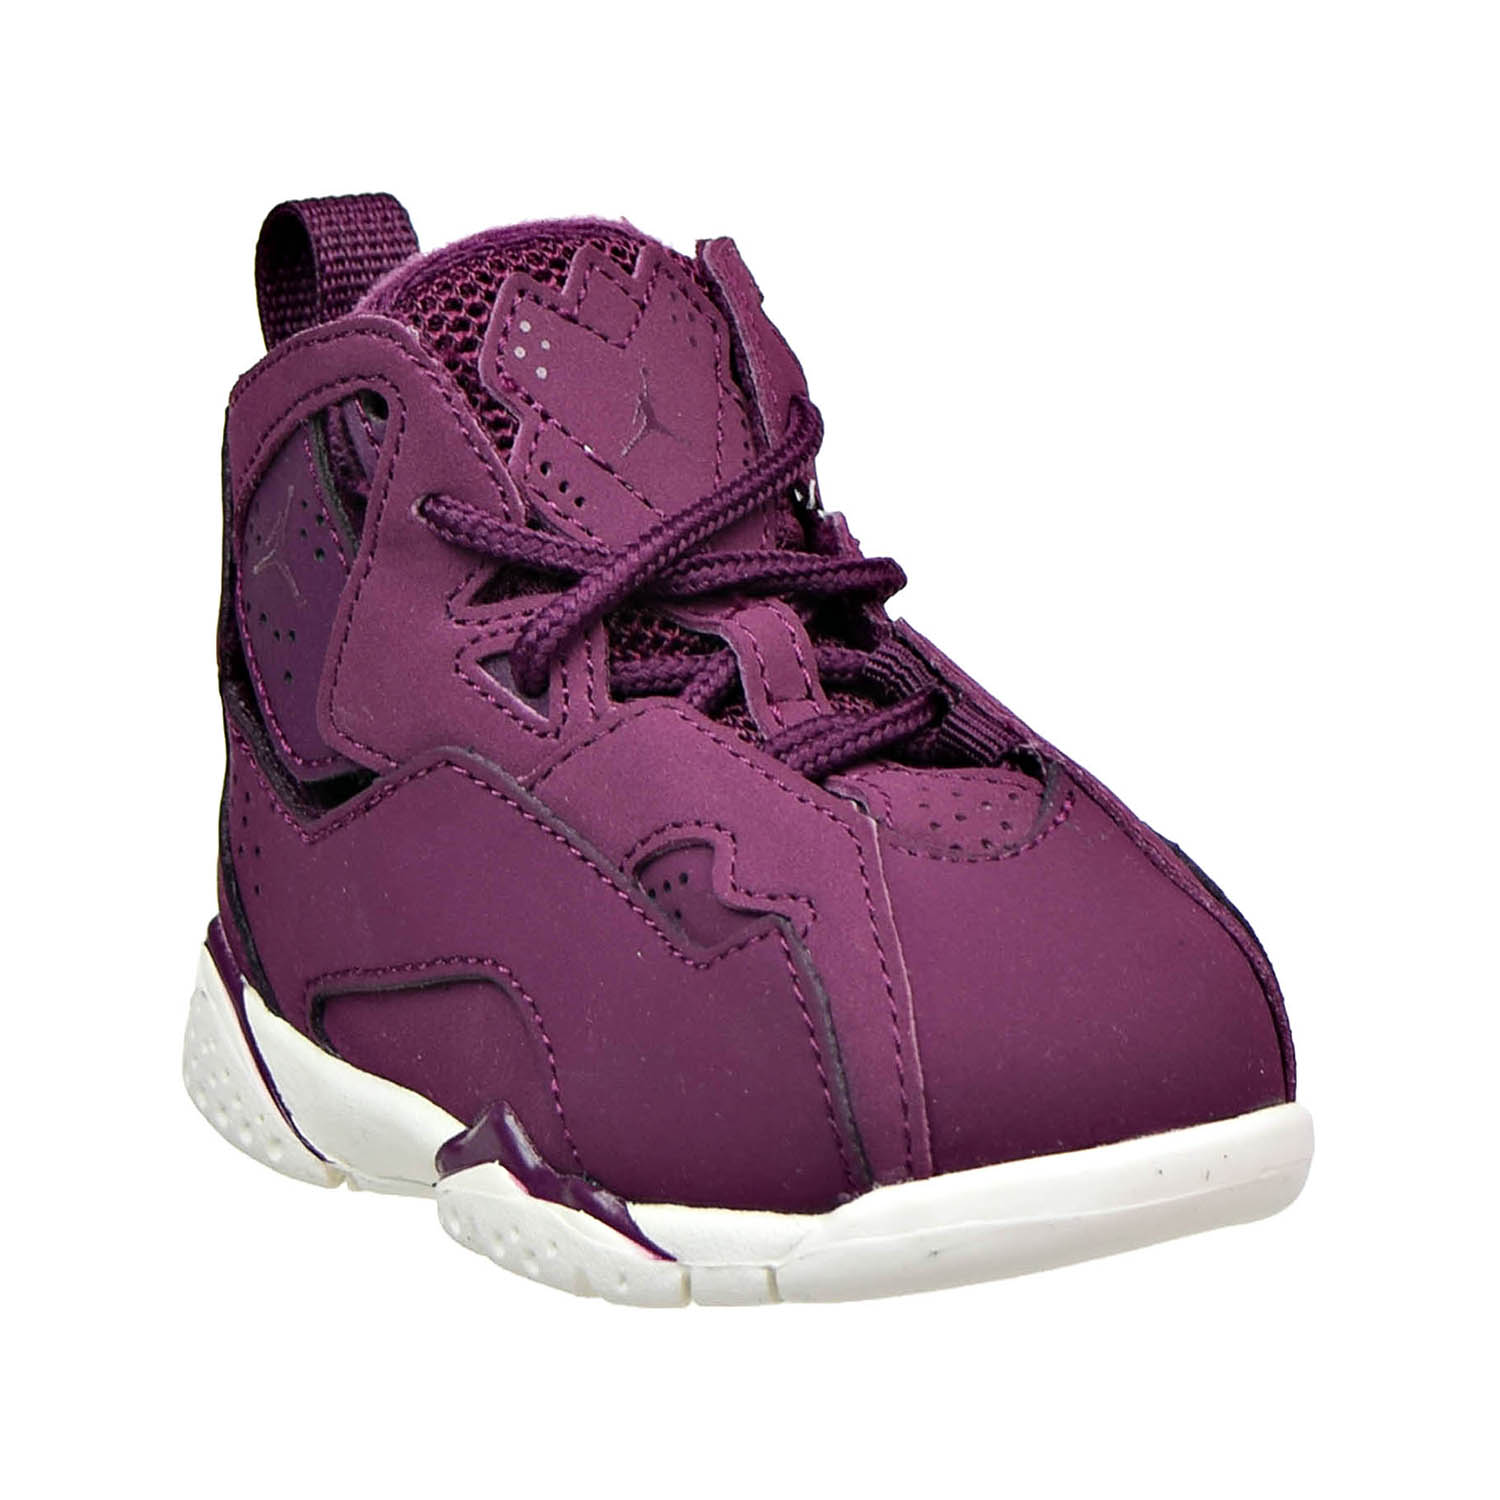 best website 86cb8 5afd0 Details about Jordan True Flight BT Toddlers Shoes Bordeaux Bordeaux Sail  343797-625